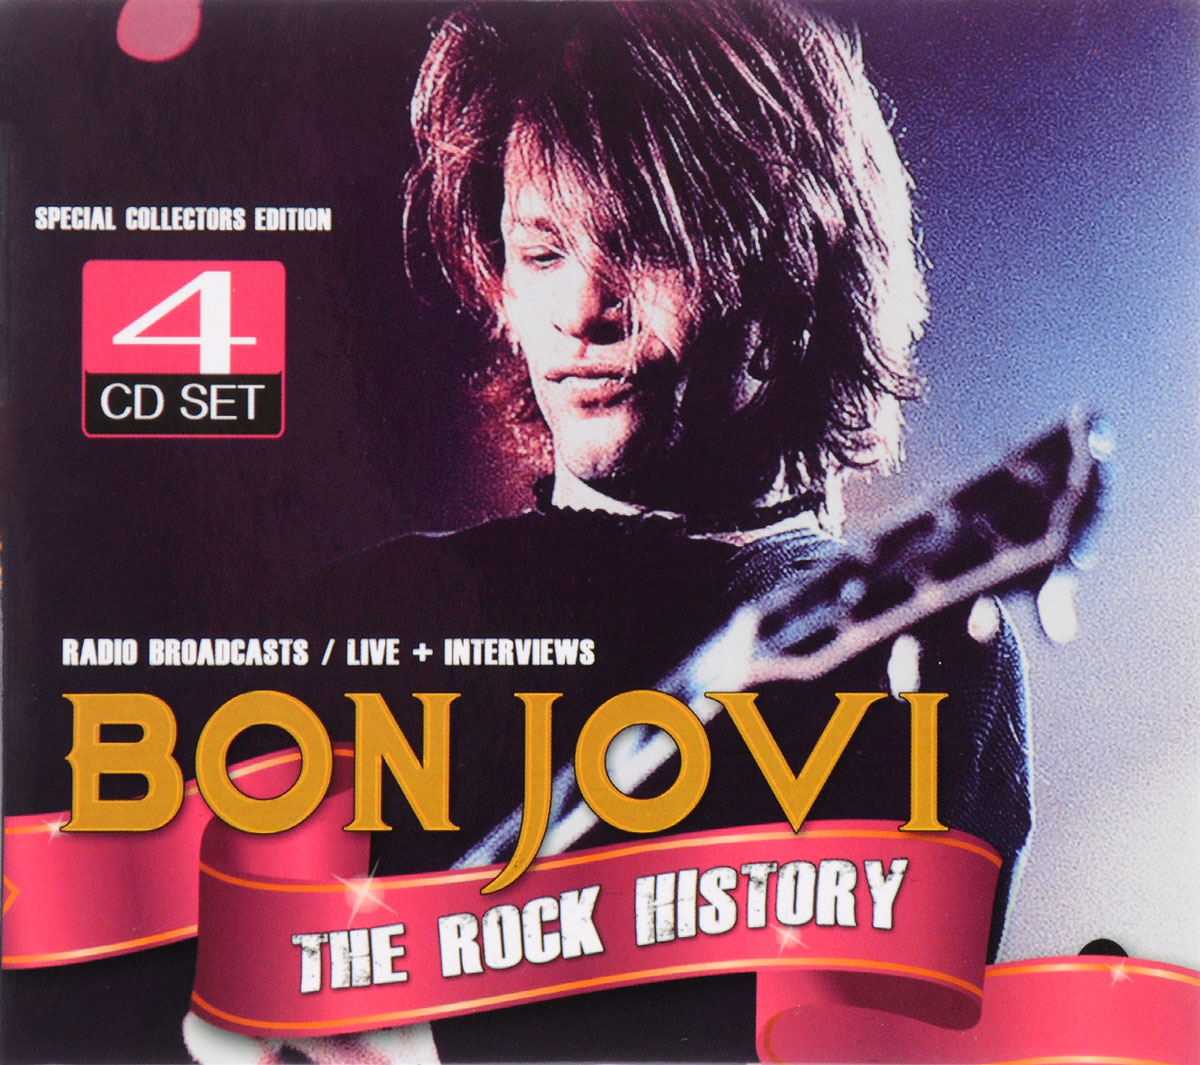 Bon Jovi Bon Jovi. The Rock History. Special Collectors Edition (4 CD) cd ac dc the razor's edge special edition digipack